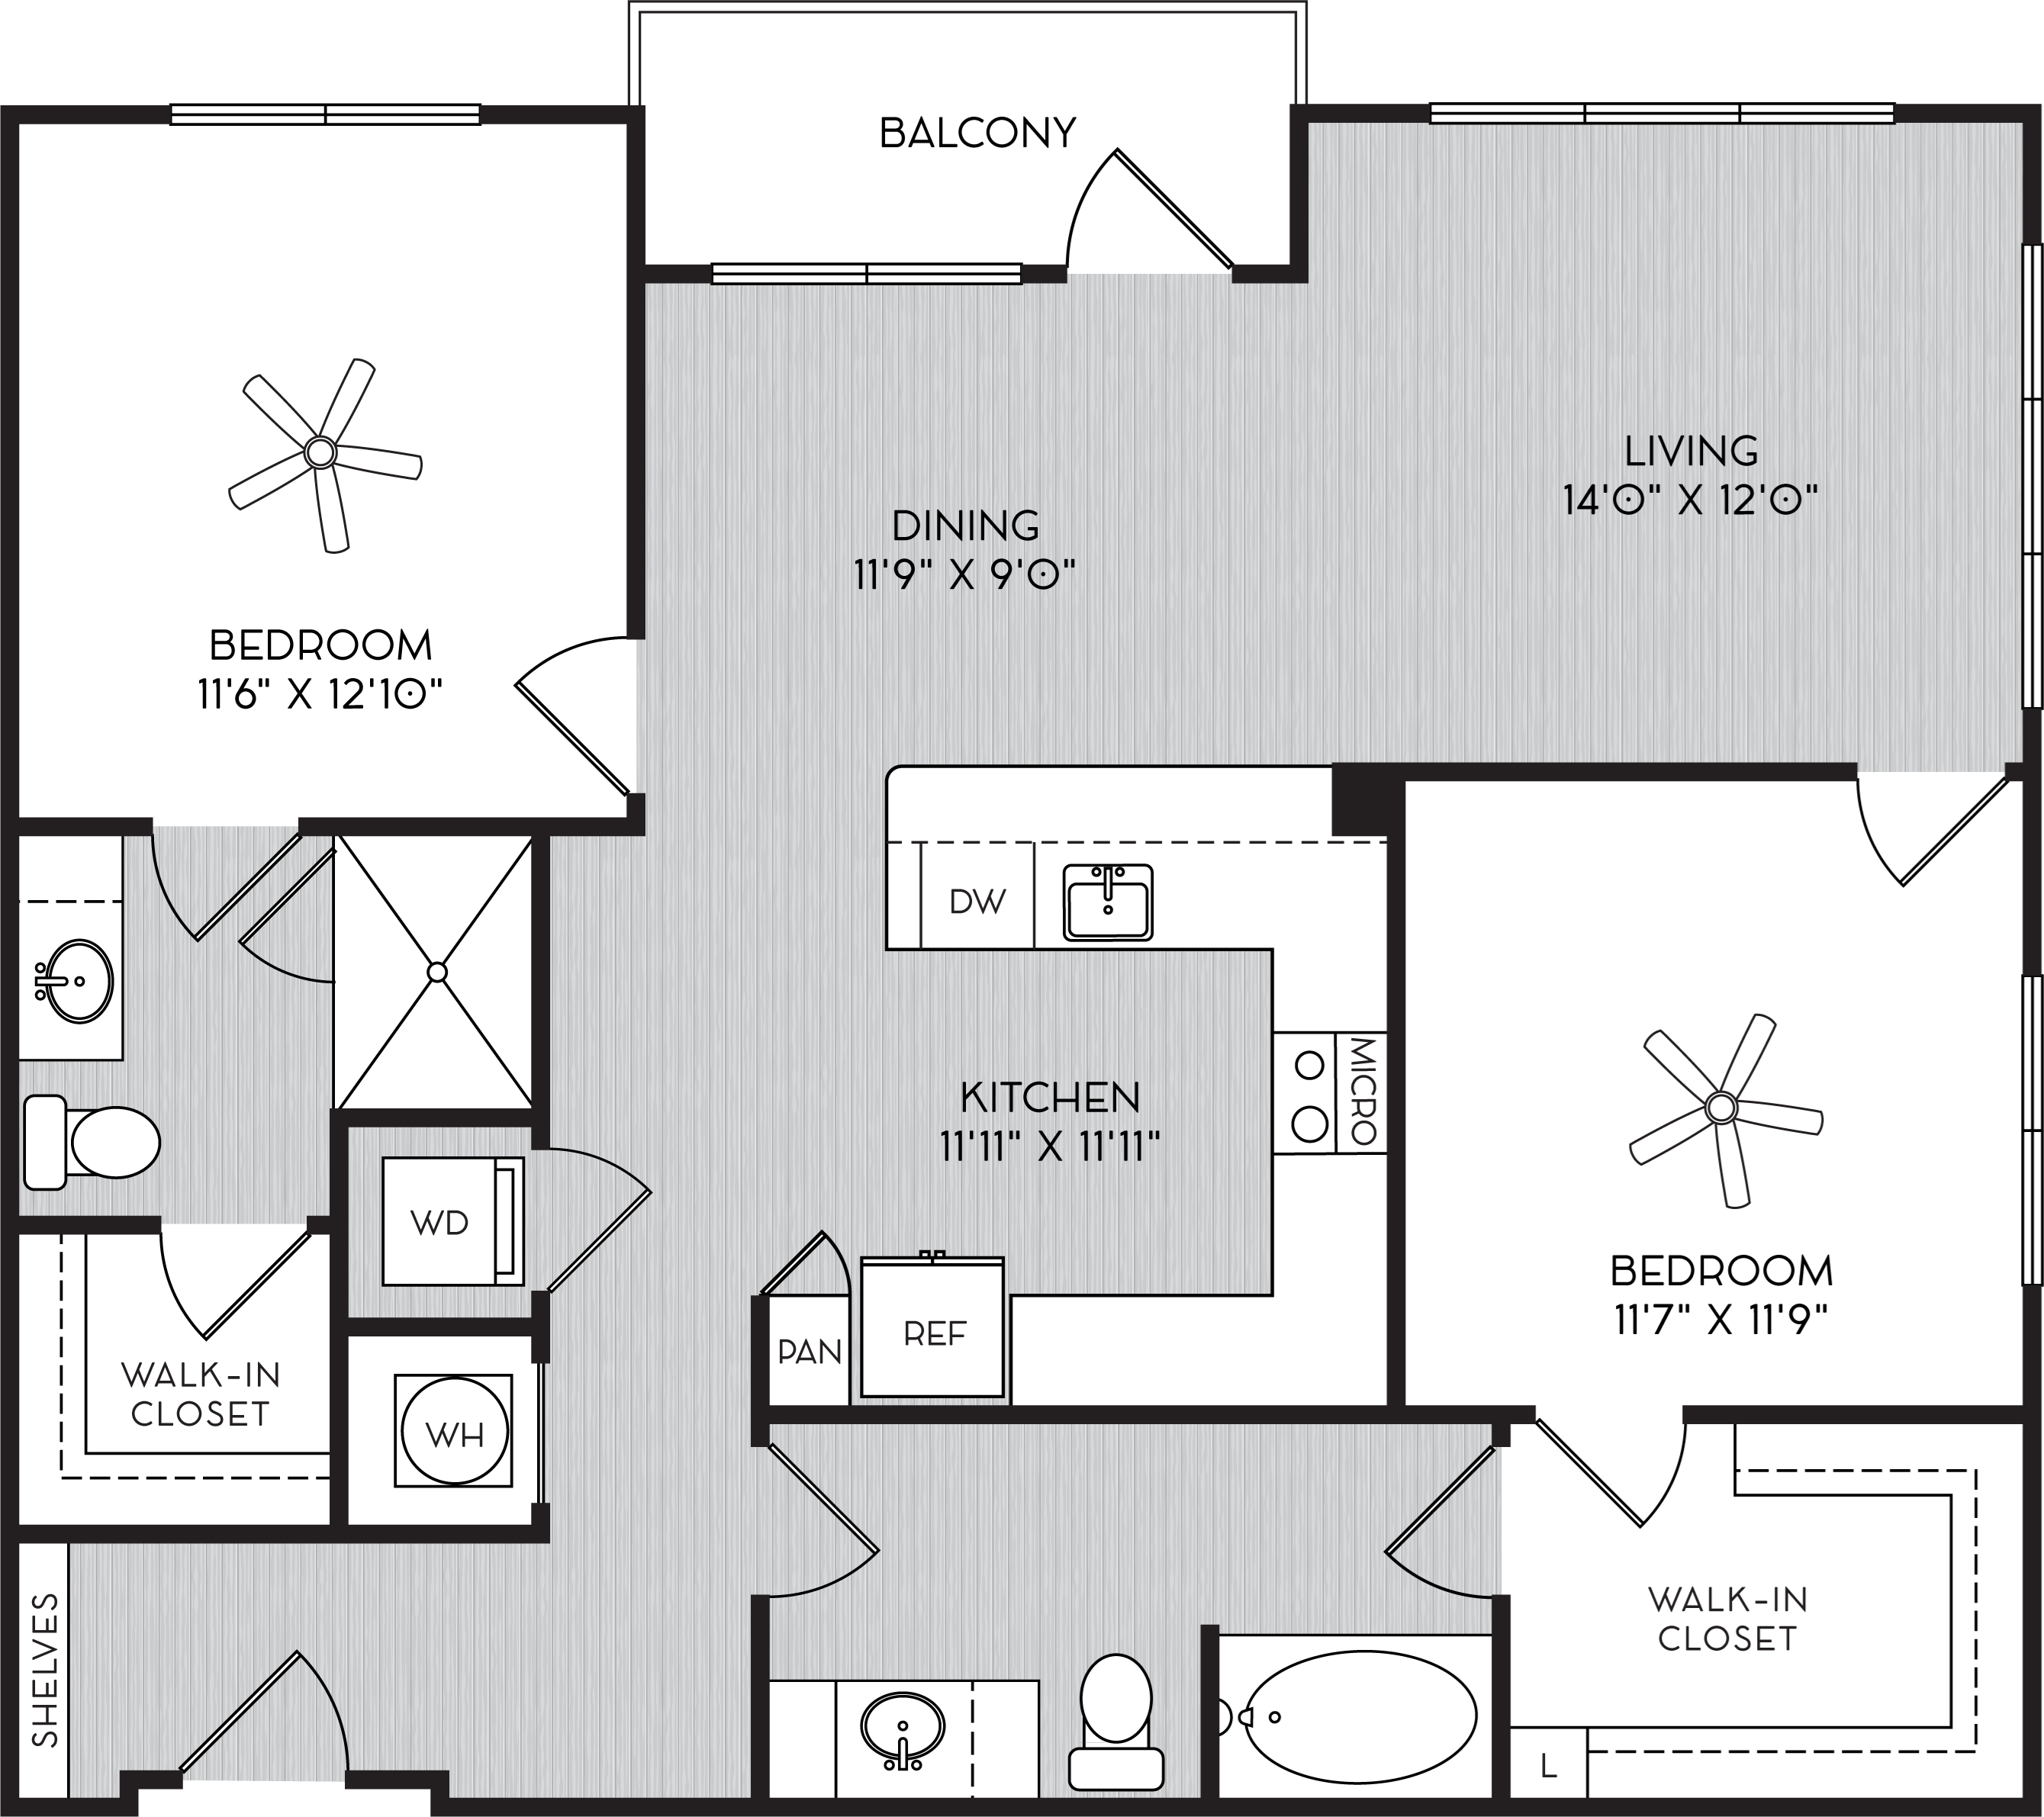 B2a Two Bedroom Floor Plan with Balcony at Apartments in Vinings